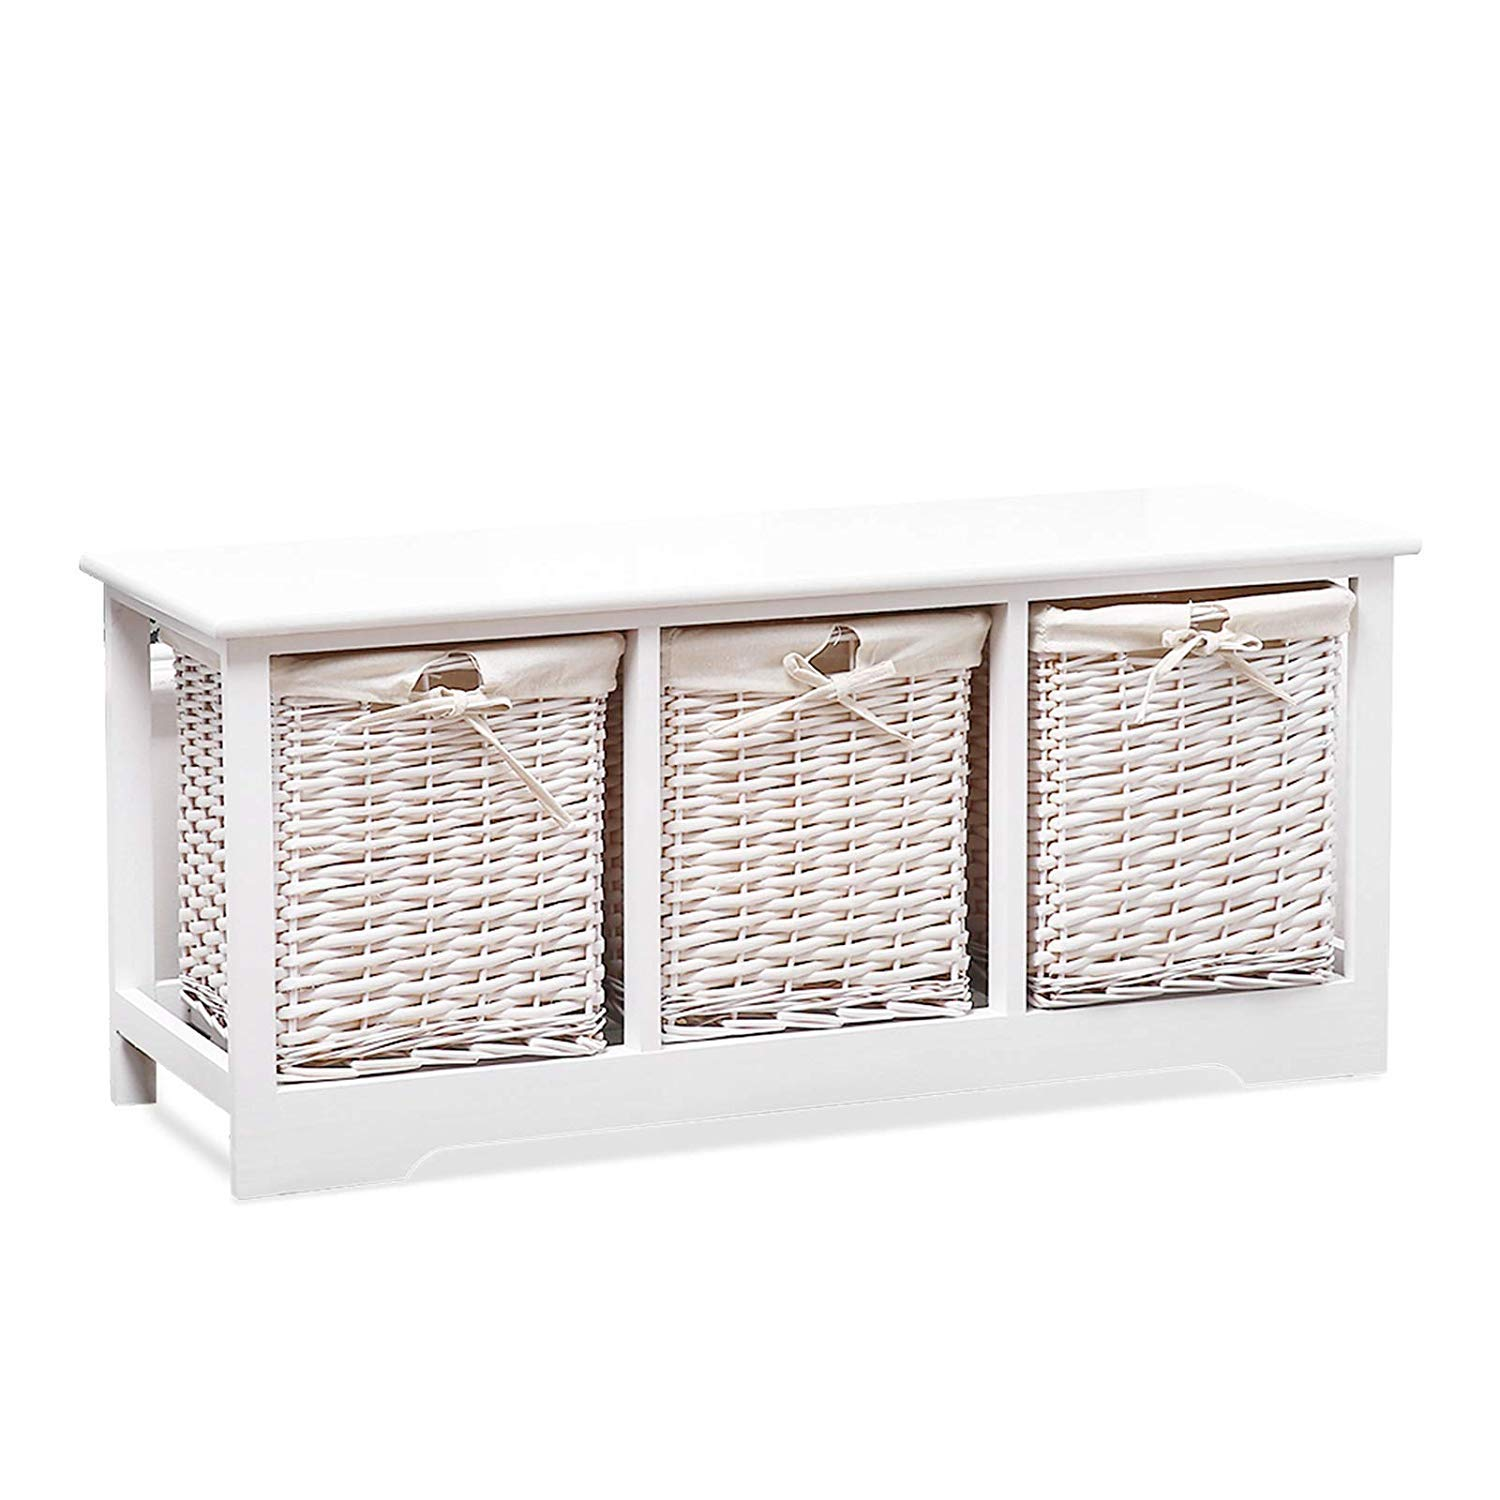 Mecor Wood Storage Bench with 3 Wicker Baskets,Entryway Furniture,Large Rectangular,White